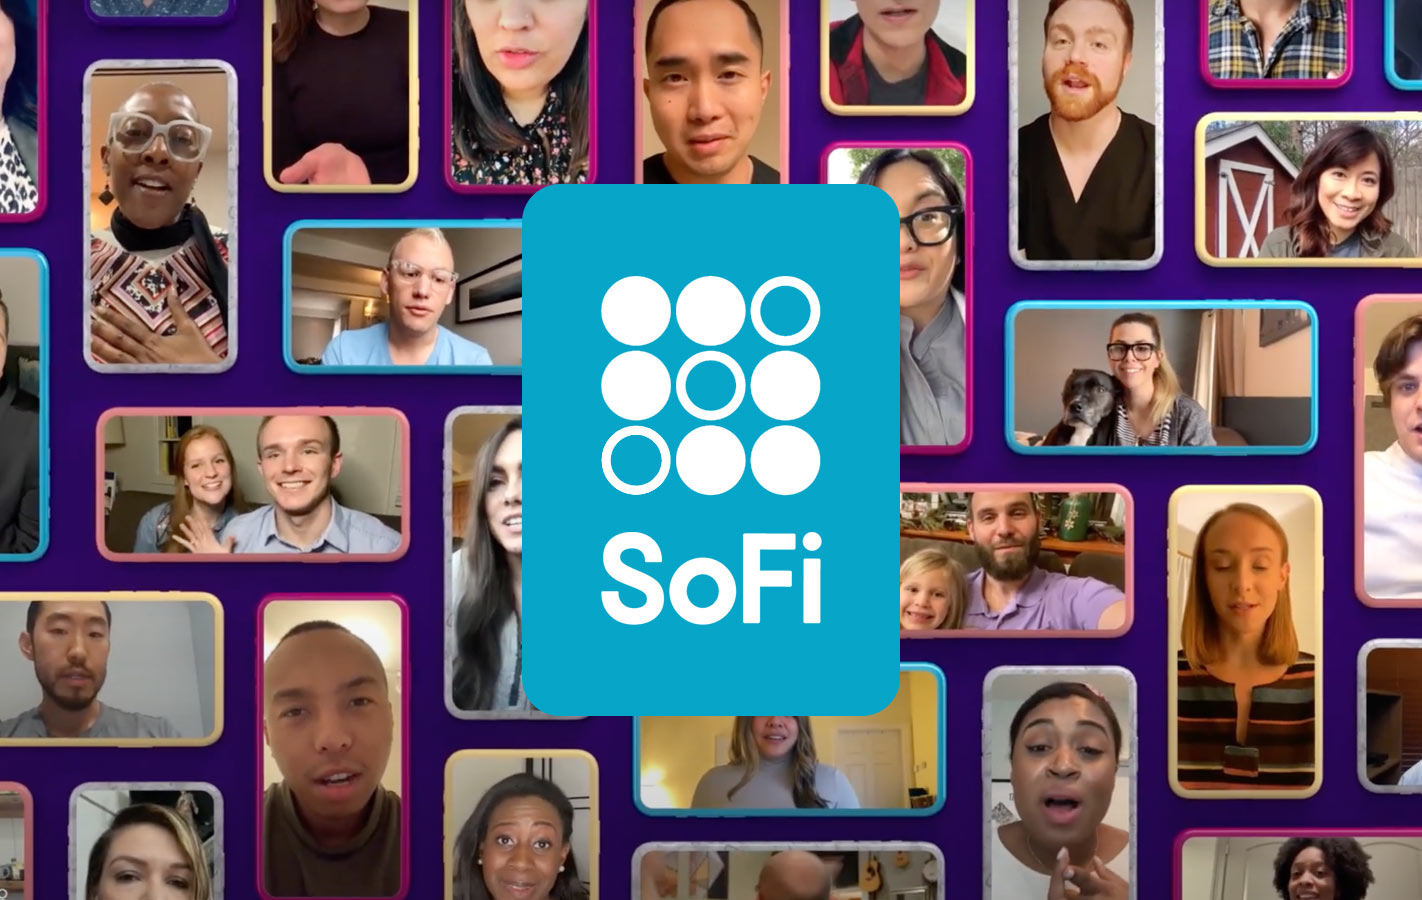 Who actually owns SoFi?